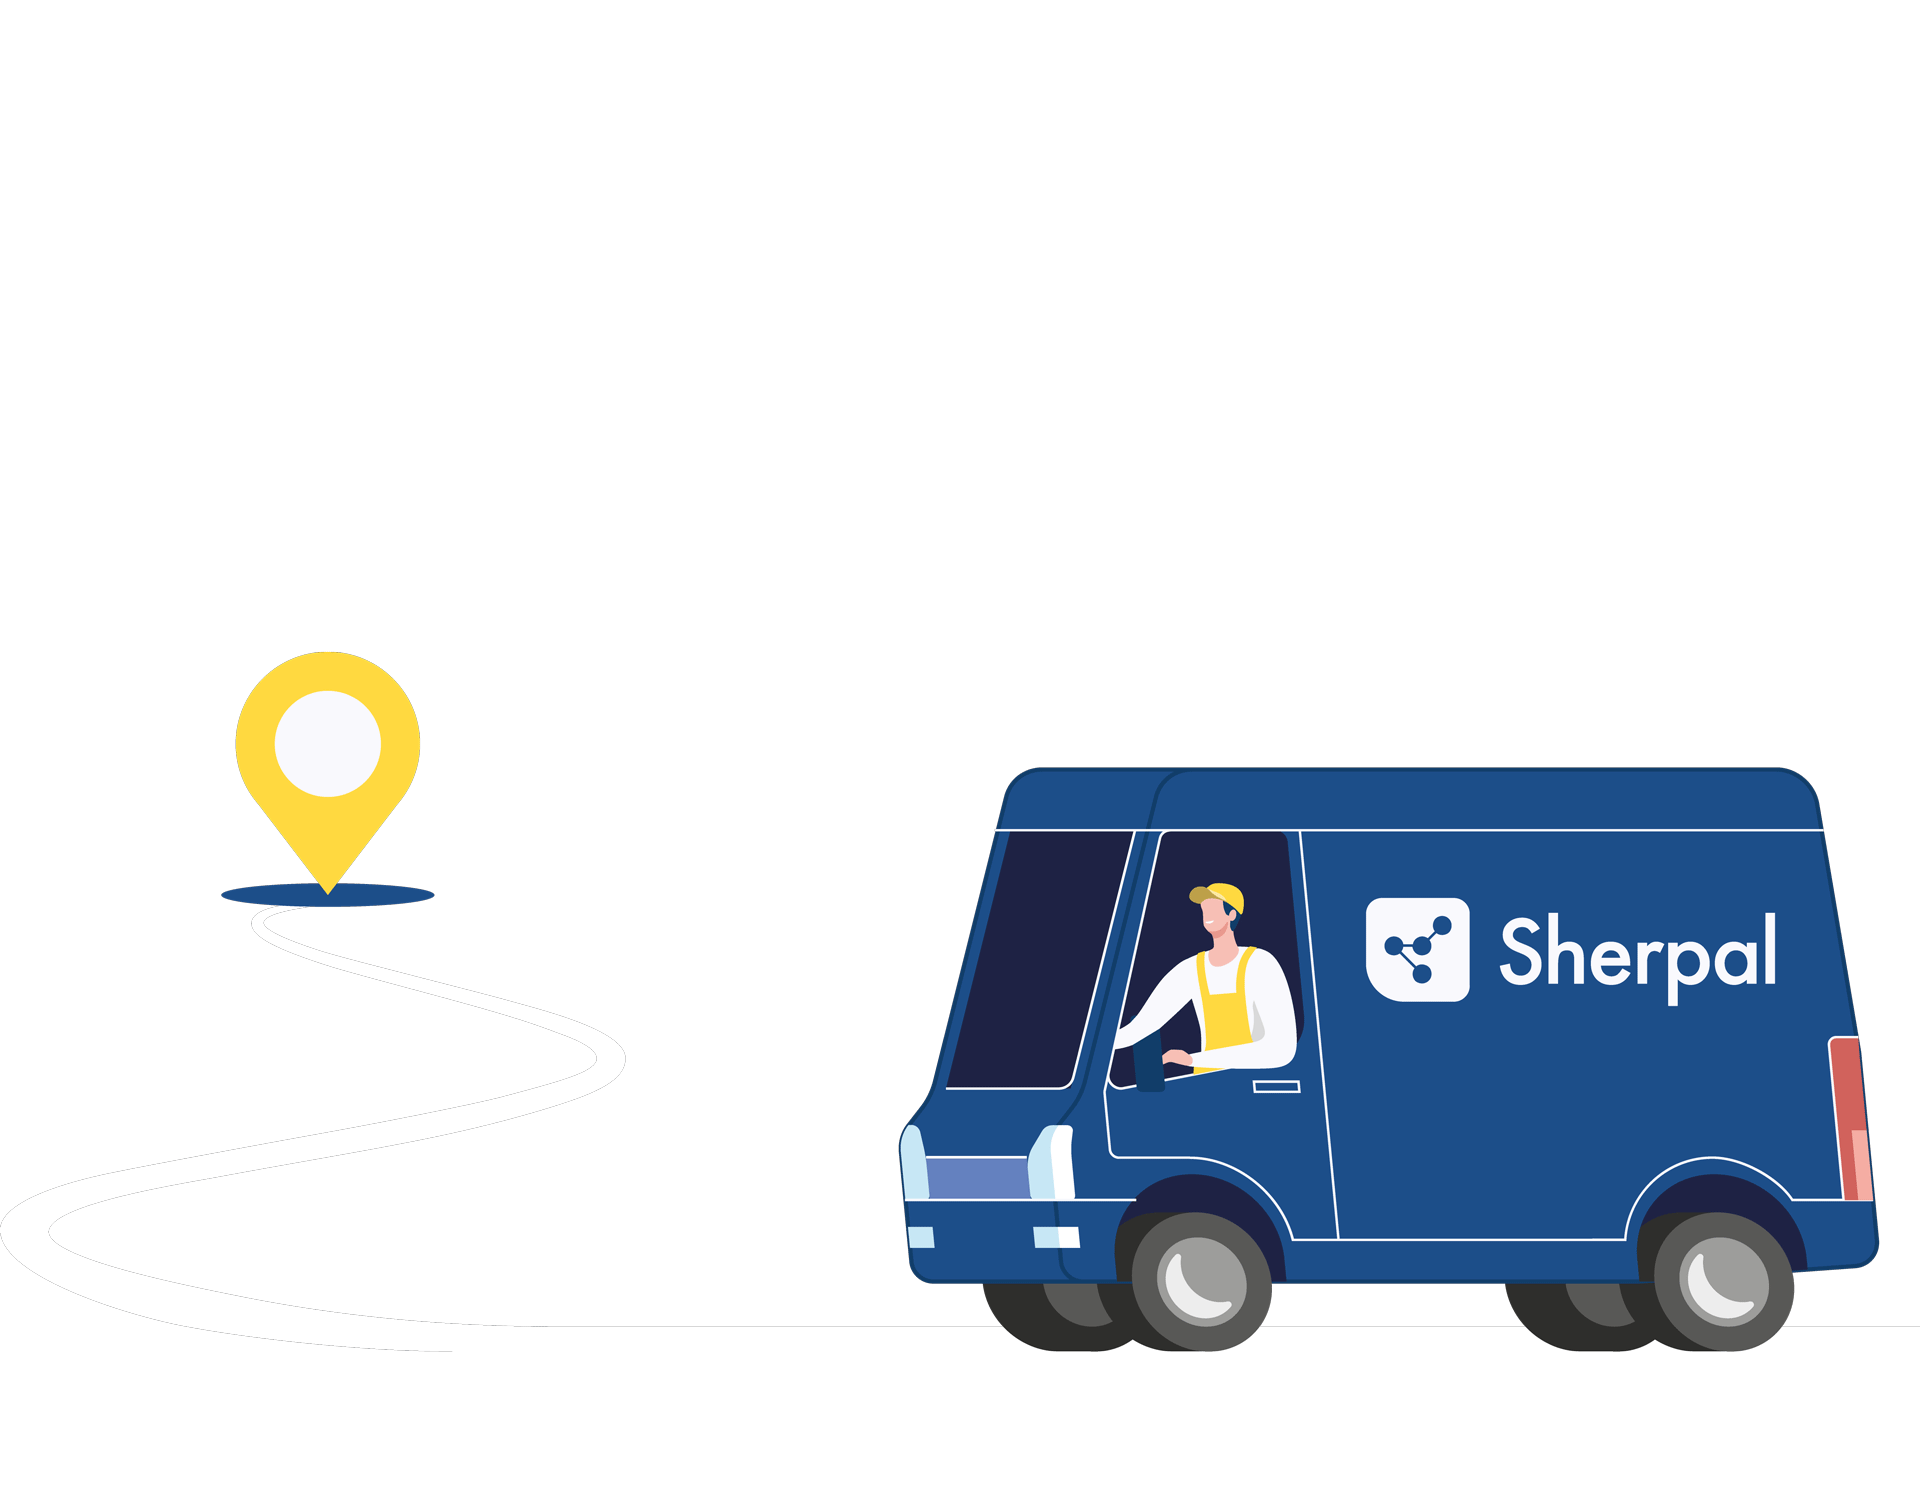 Sherpal - The distribution path